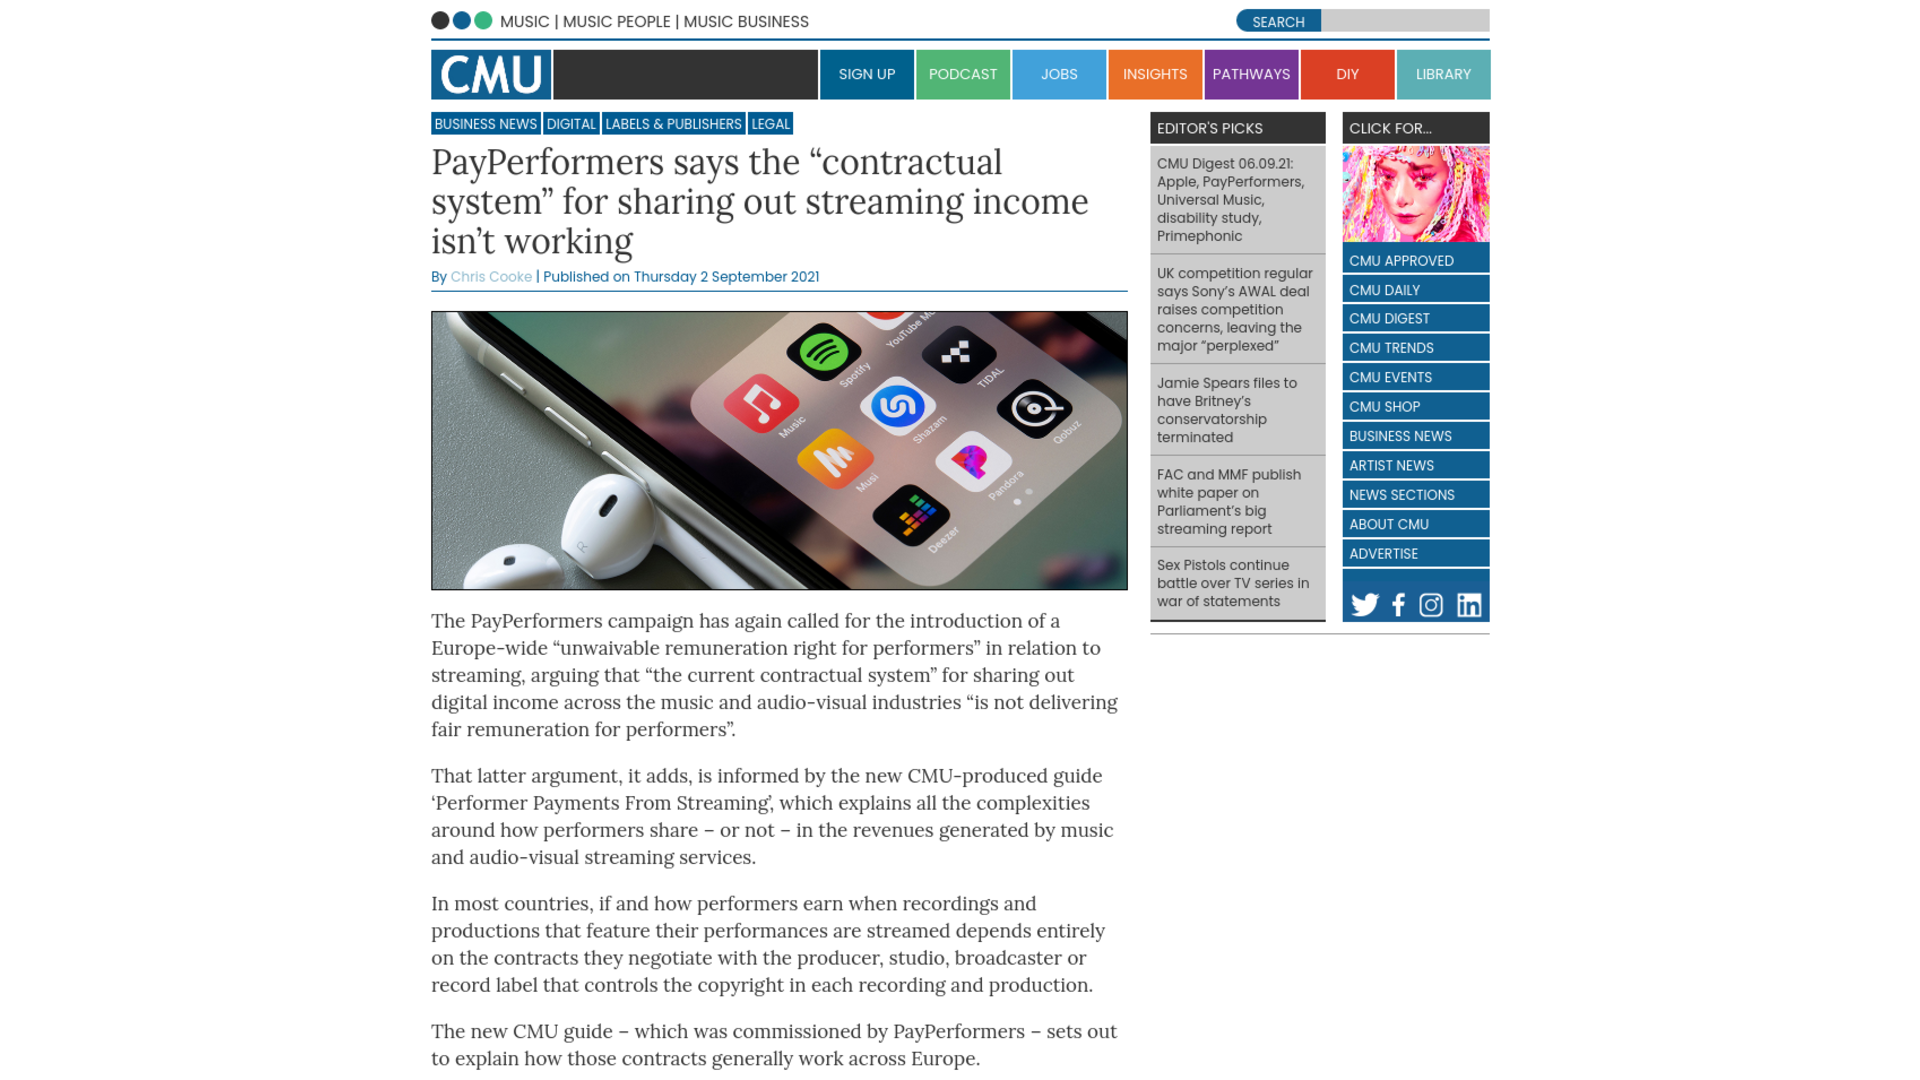 """Fairness Rocks News PayPerformers says the """"contractual system"""" for sharing out streaming income isn't working"""